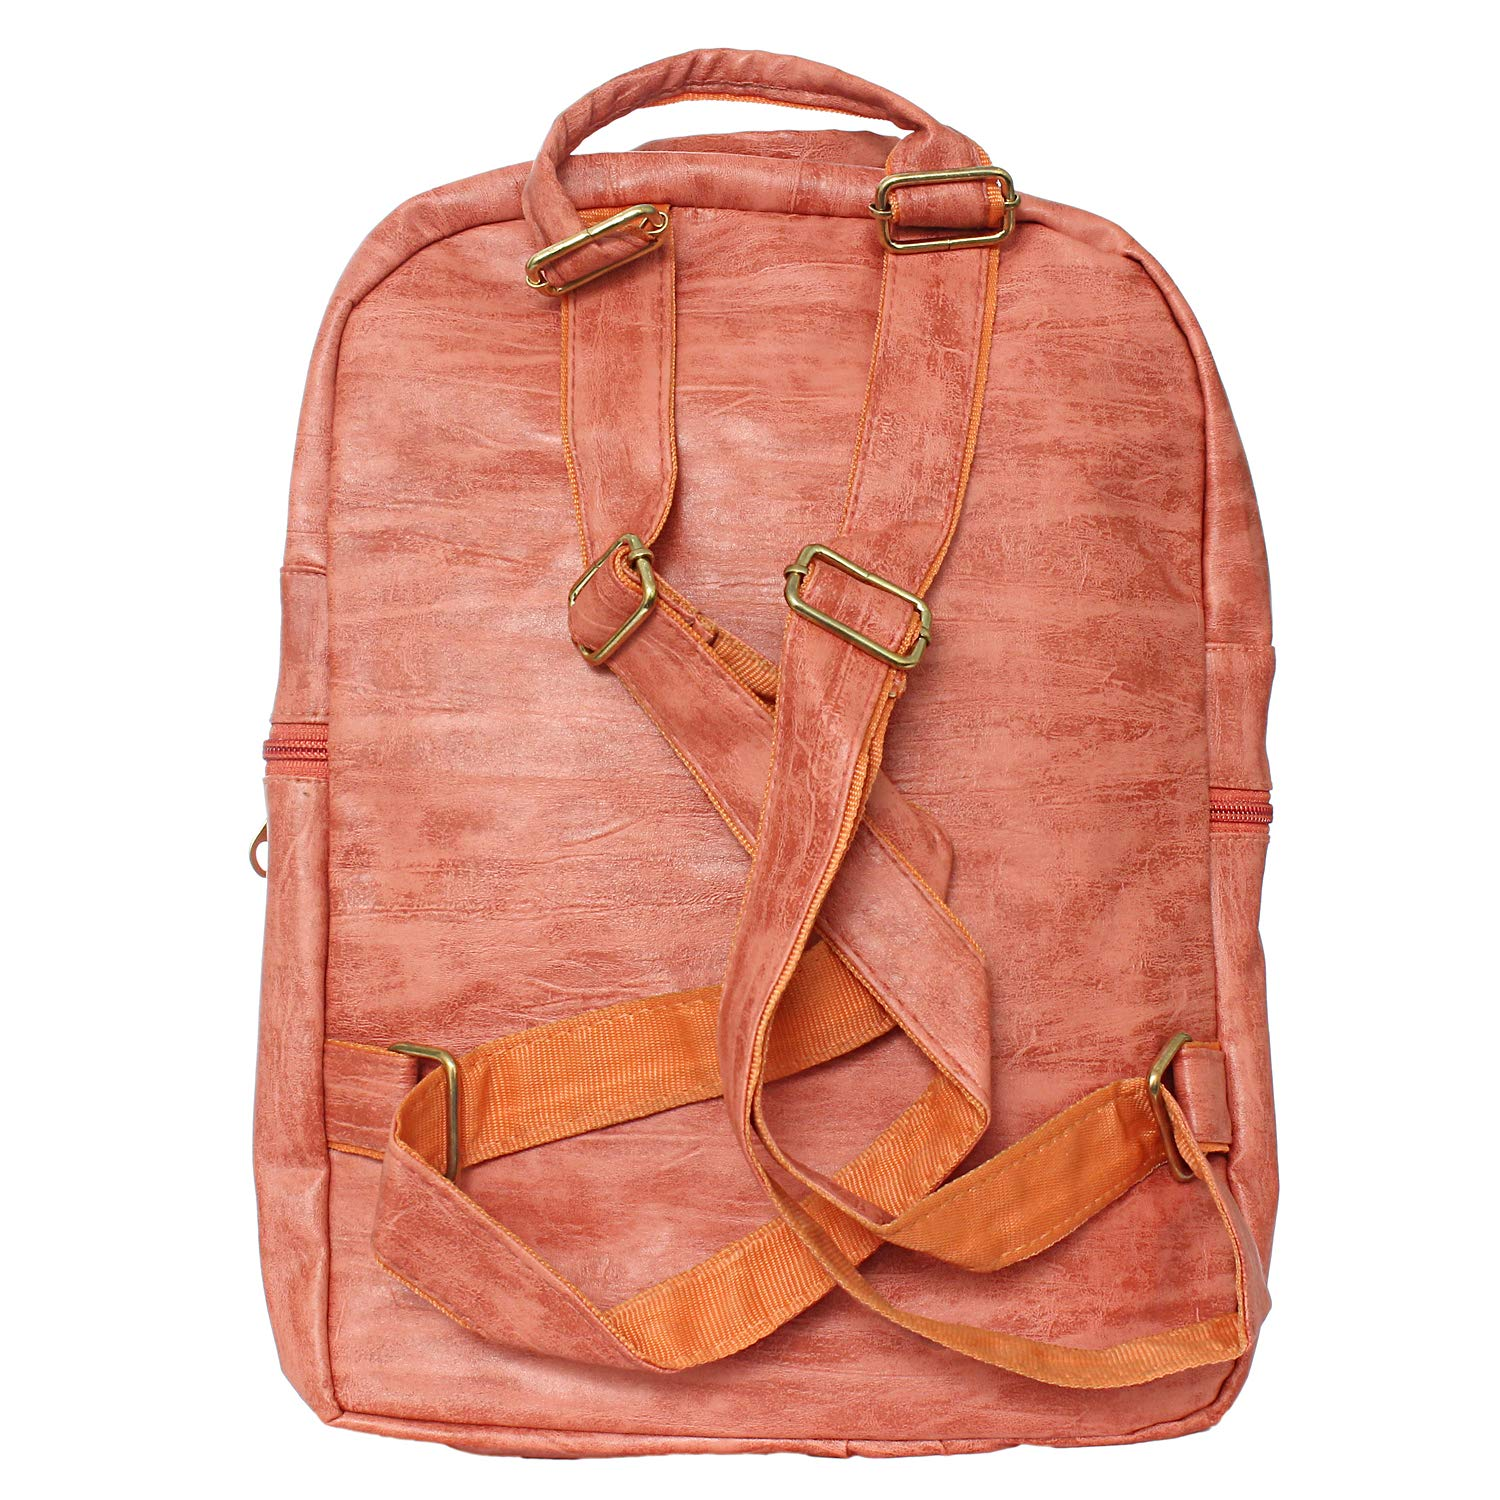 Artificial Leather Student Backpack For Girls (Peach) - Bagaholics Gift